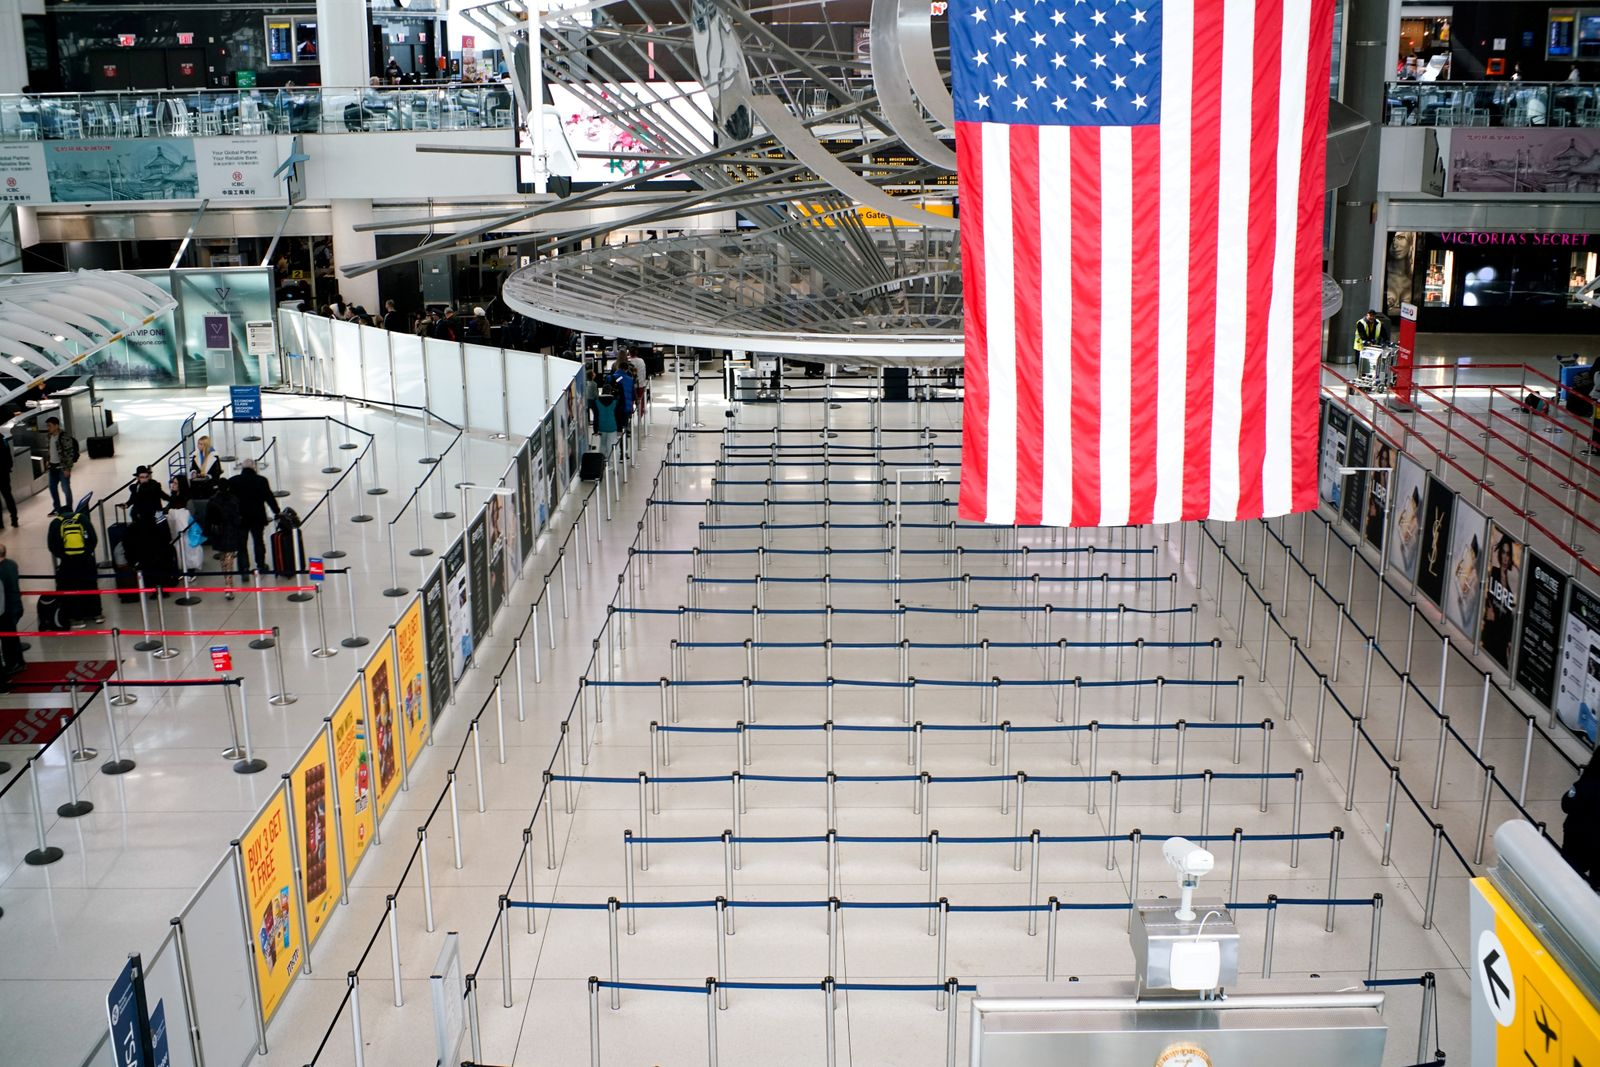 The lines to reach TSA immigration process are seen empty at one of its terminals at the John F. Kennedy International Airport in New York